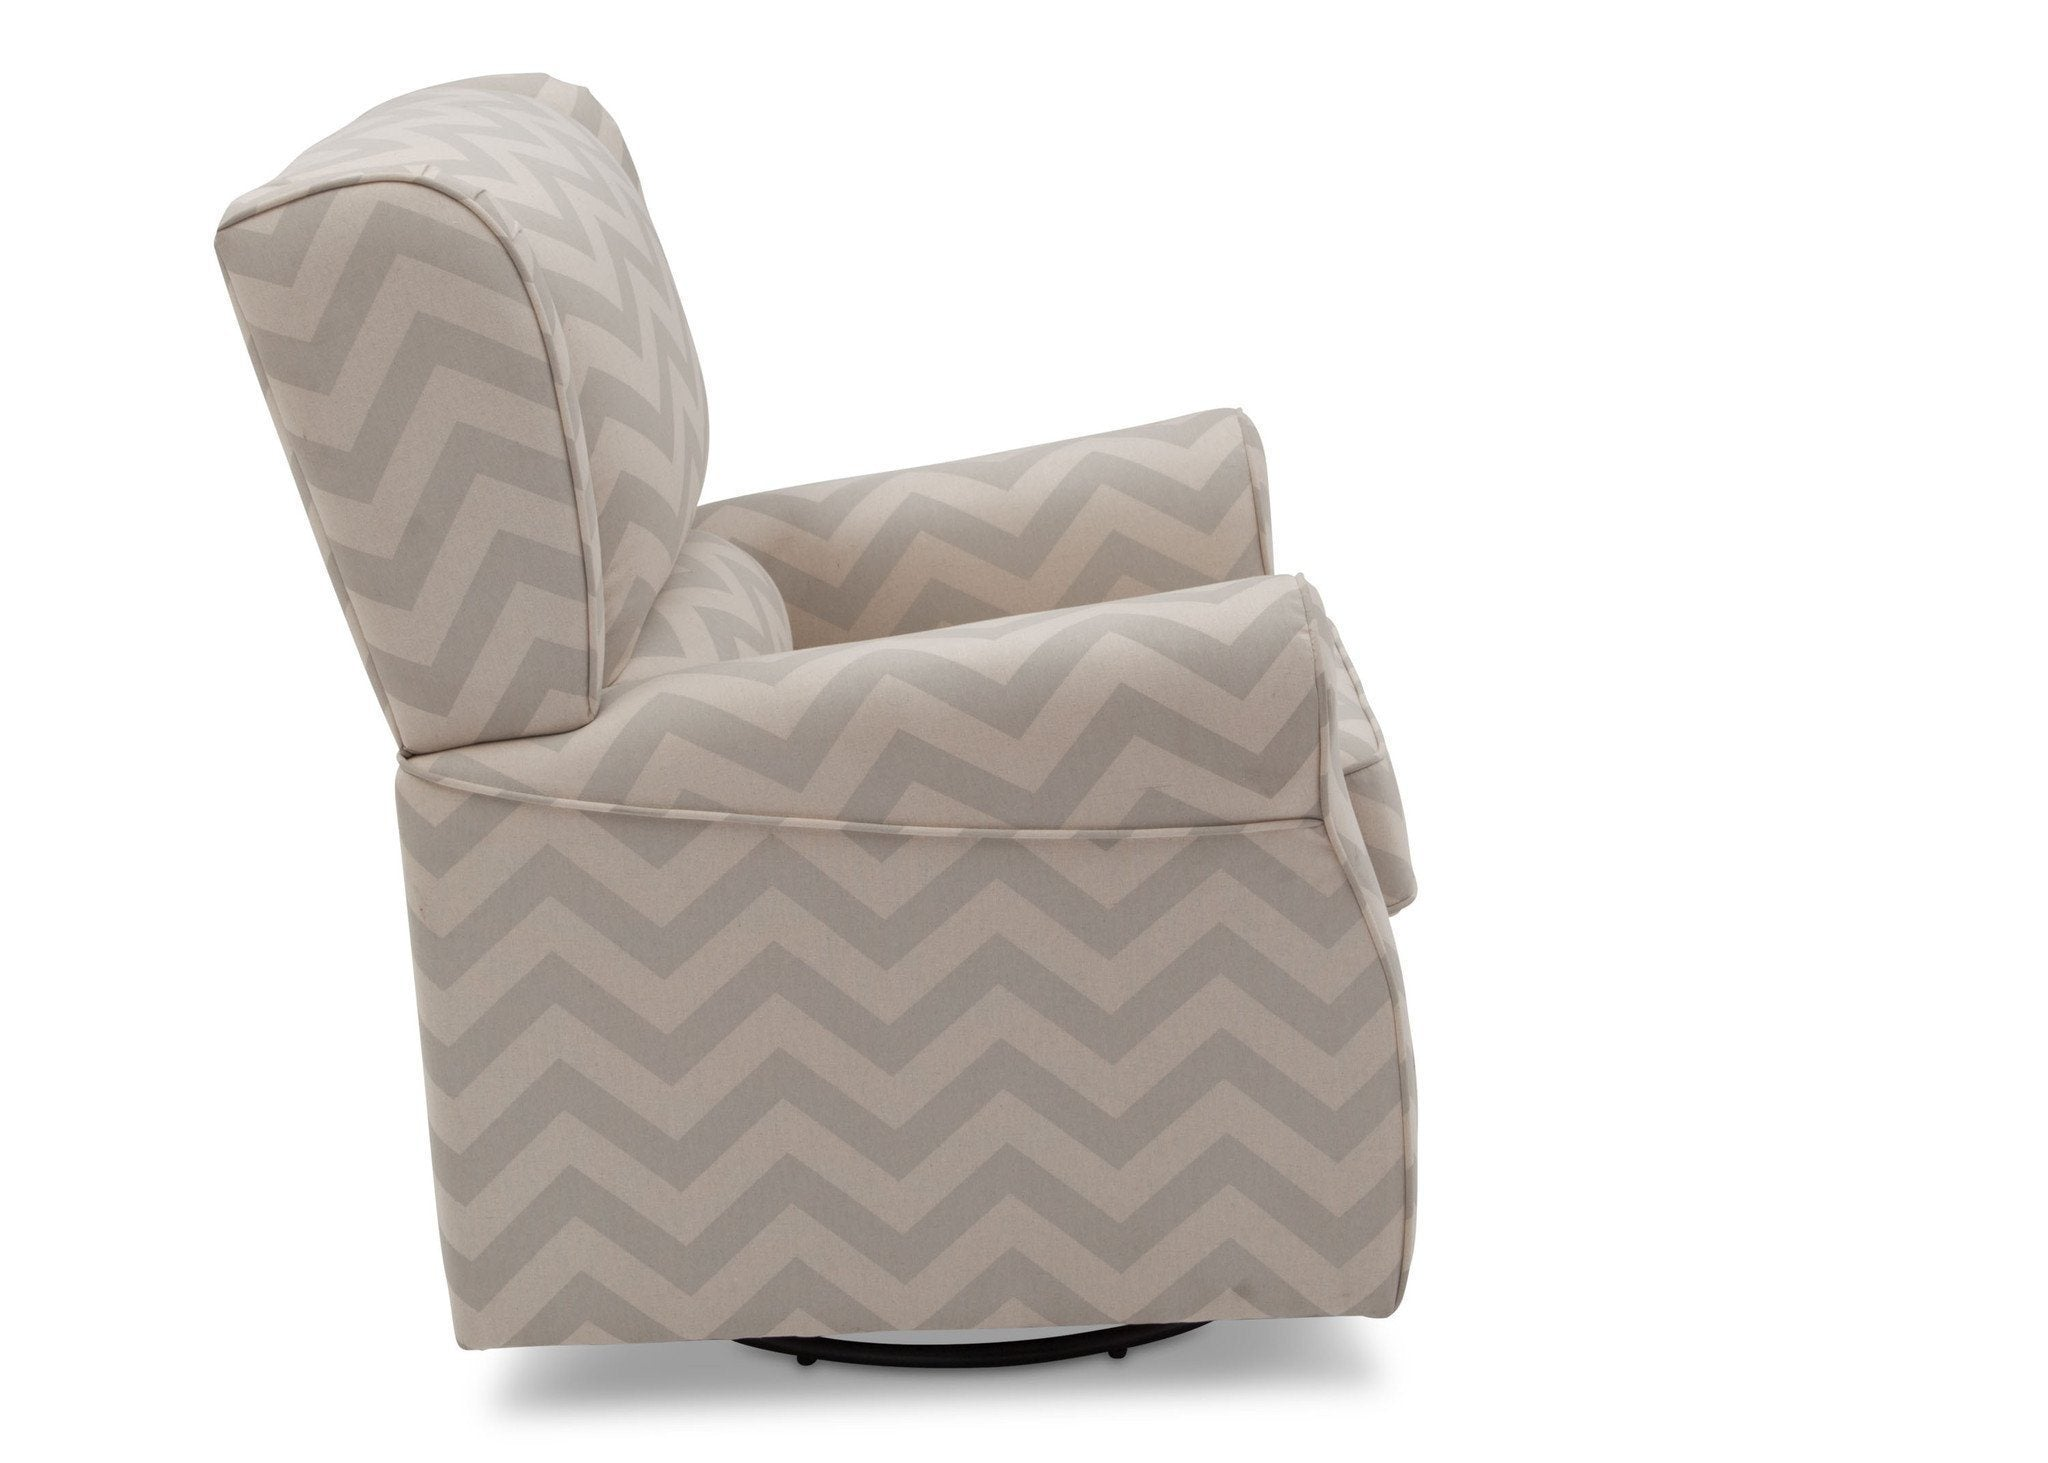 Delta Children Morgan Grey Chevron (900) Glider Full Side View a3a